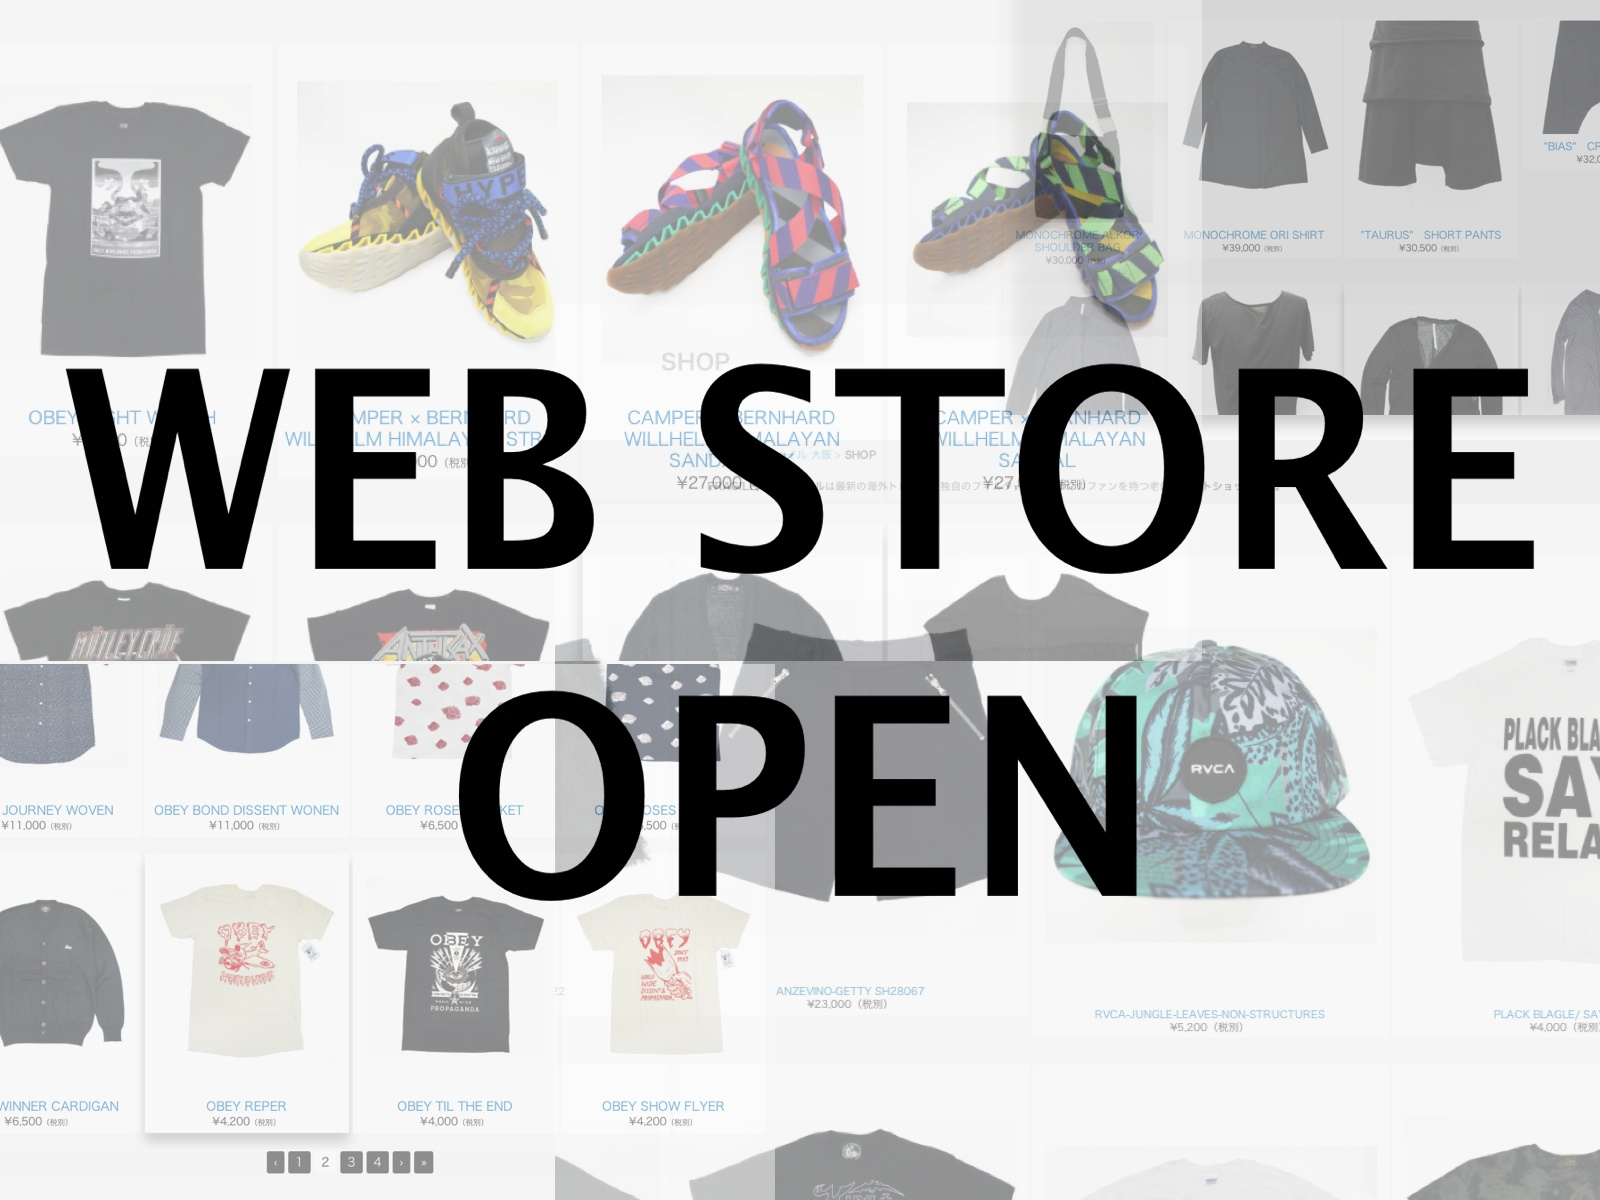 FRAGILE WEB STORE OPEN